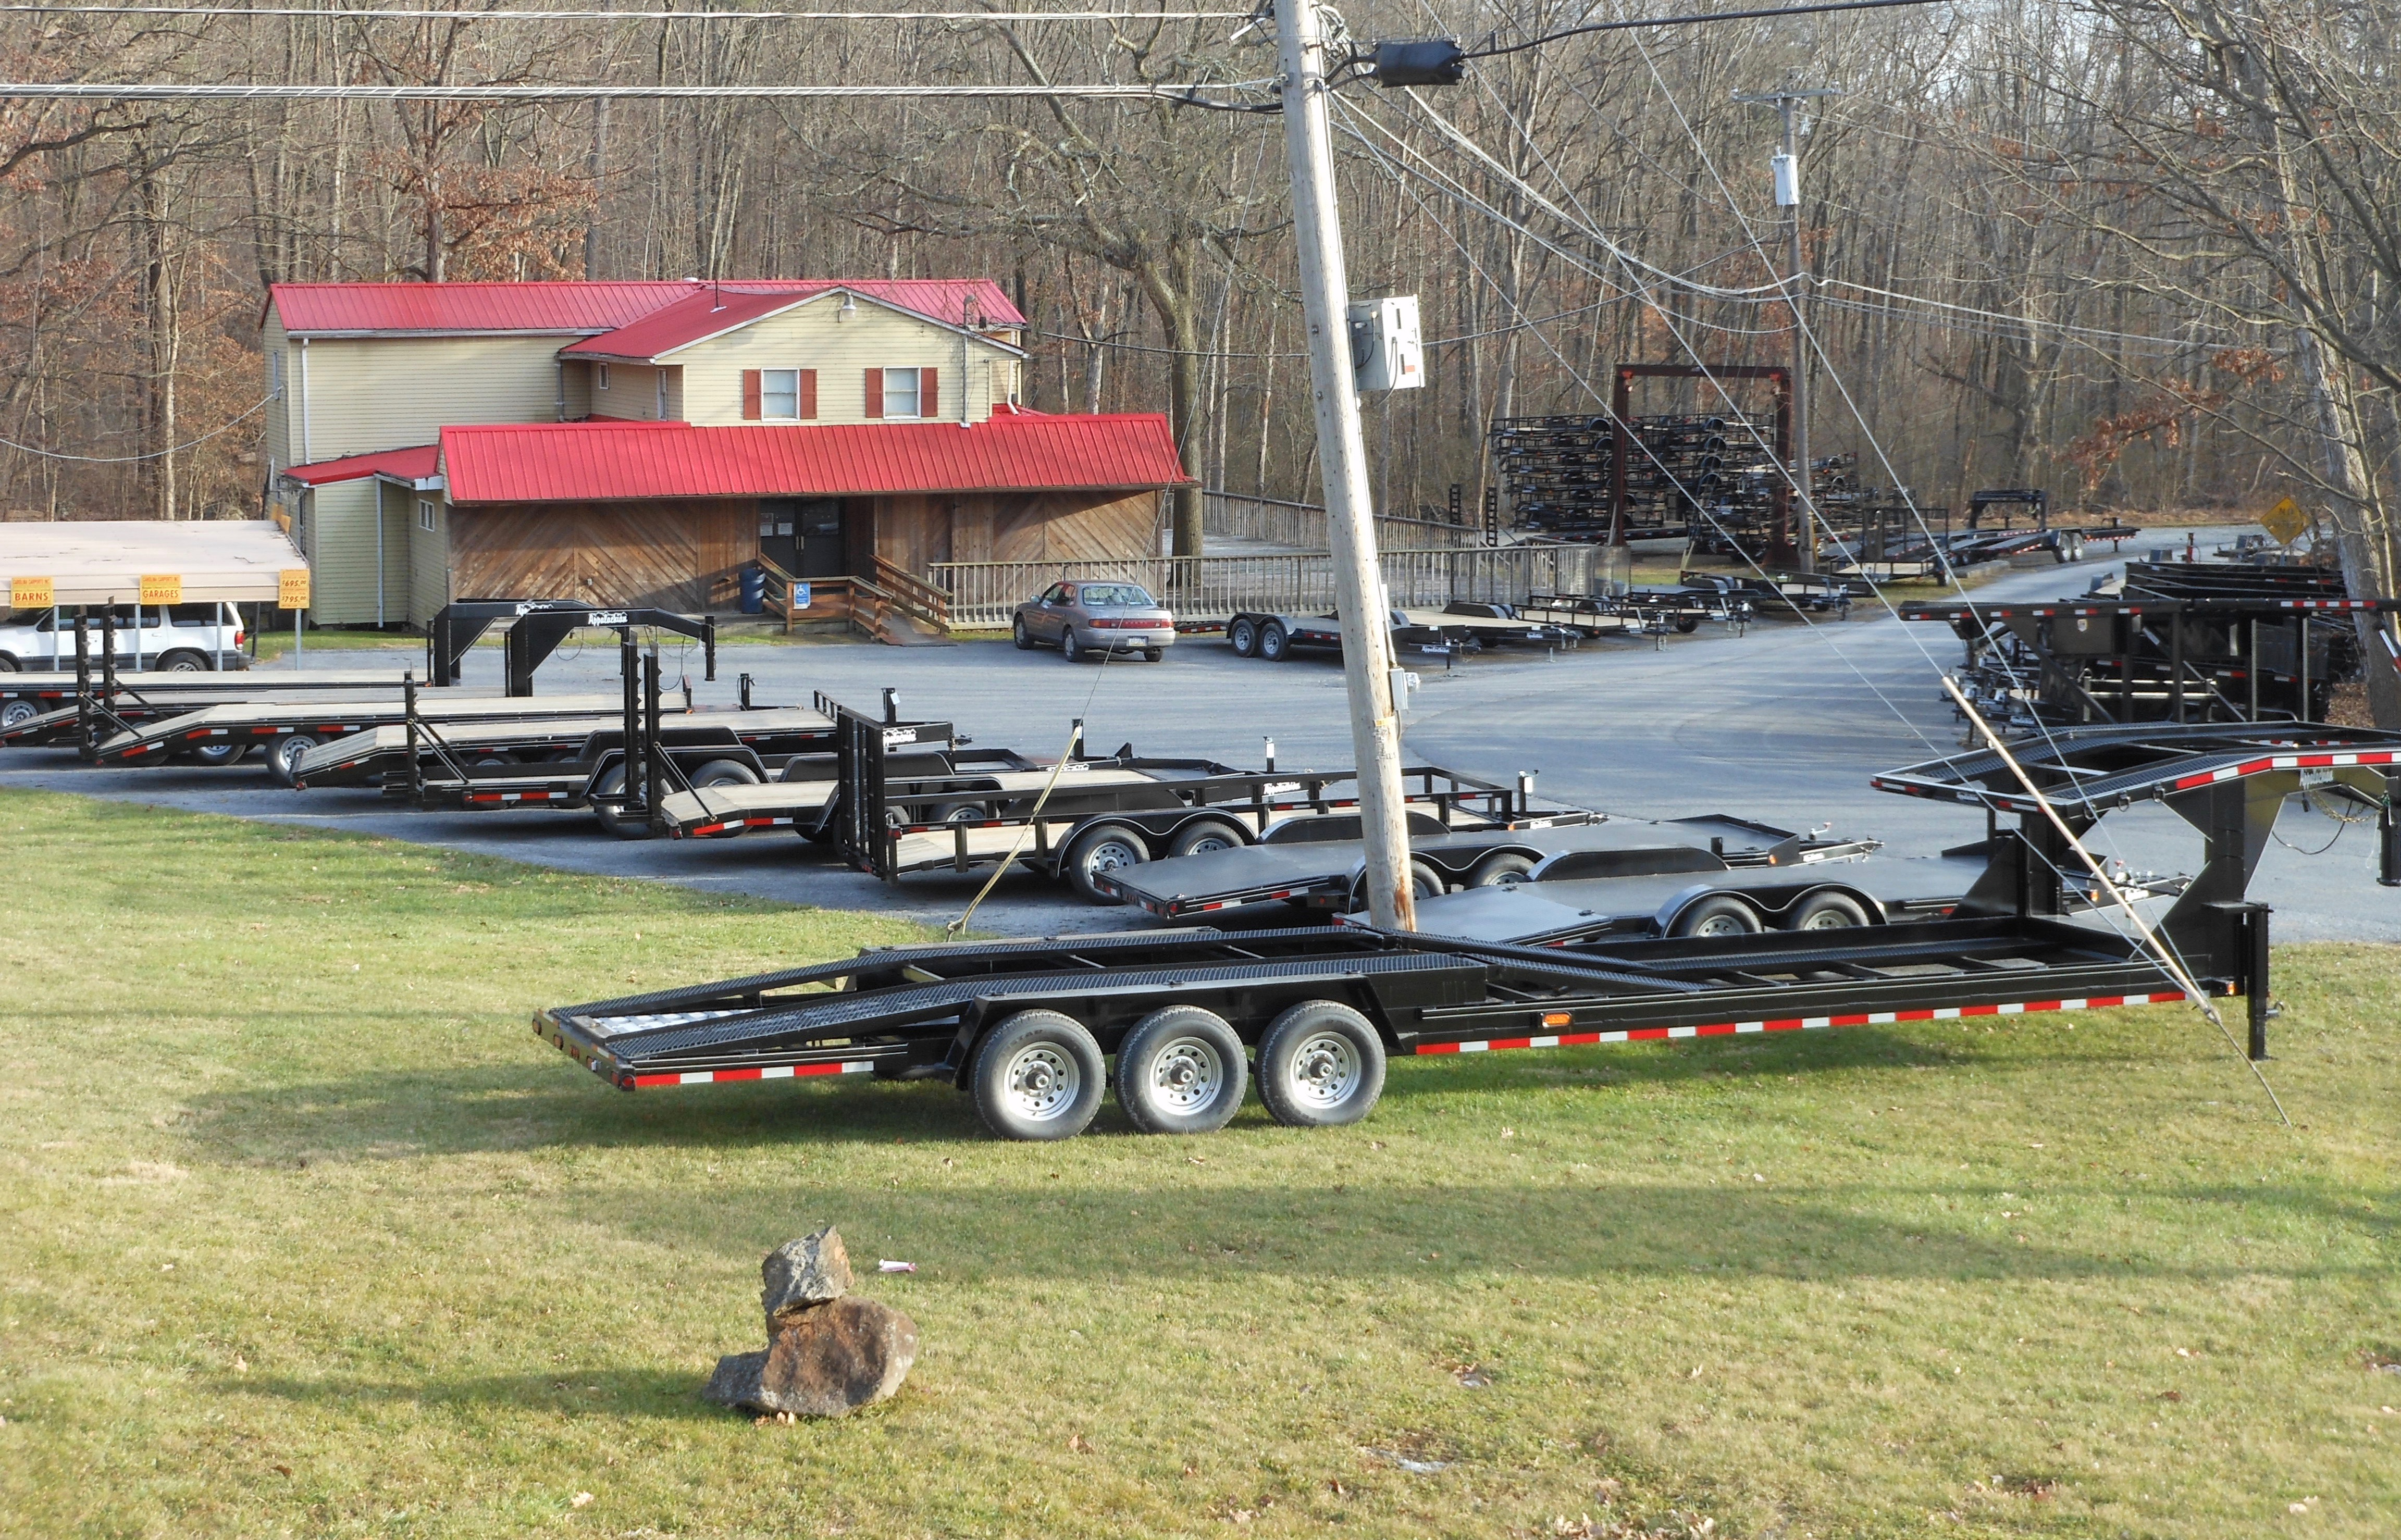 Auto Auction Pa >> Trailers for Sale in Pennsylvania at Appalachian Trailers - Manheim, PA